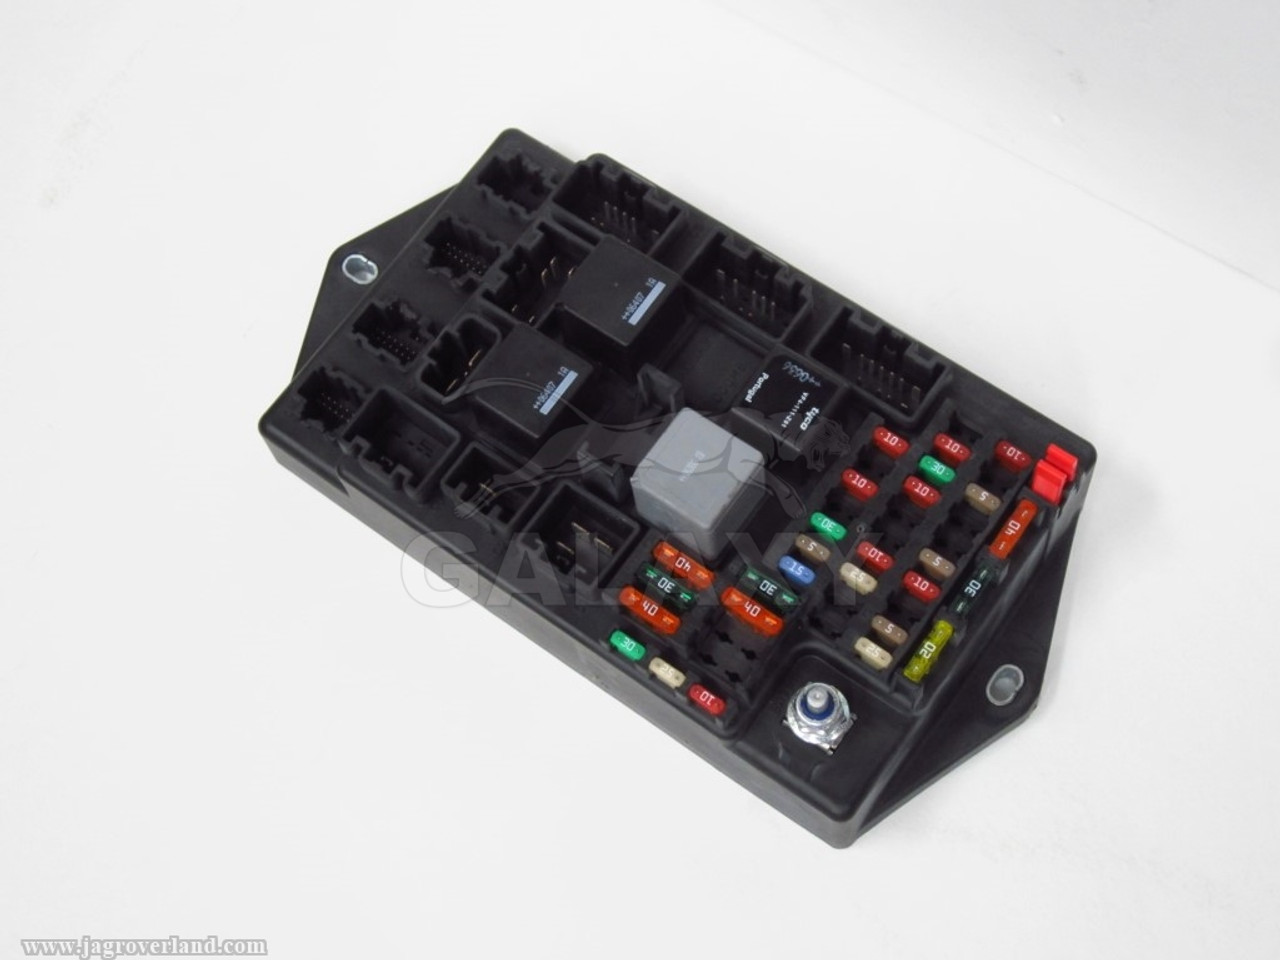 Fuse Box 07-09 XK R 6W83-14A073-CG C2P20669 Jaguar X Type Sel Fuse Box on isuzu axiom fuse box, jaguar xj8 fuse box diagram, chrysler aspen fuse box, lincoln mark lt fuse box, s-type fuse box, bmw 5 series fuse box, lincoln continental fuse box, infiniti fx35 fuse box, w203 fuse box, kia spectra fuse box, cadillac escalade fuse box, jaguar xk8 fuse box, mercury mariner fuse box, jaguar s-type white, chevrolet cruze fuse box, infiniti m45 fuse box, jaguar e-type fuse box, saab 95 fuse box, 2004 jaguar fuse box,